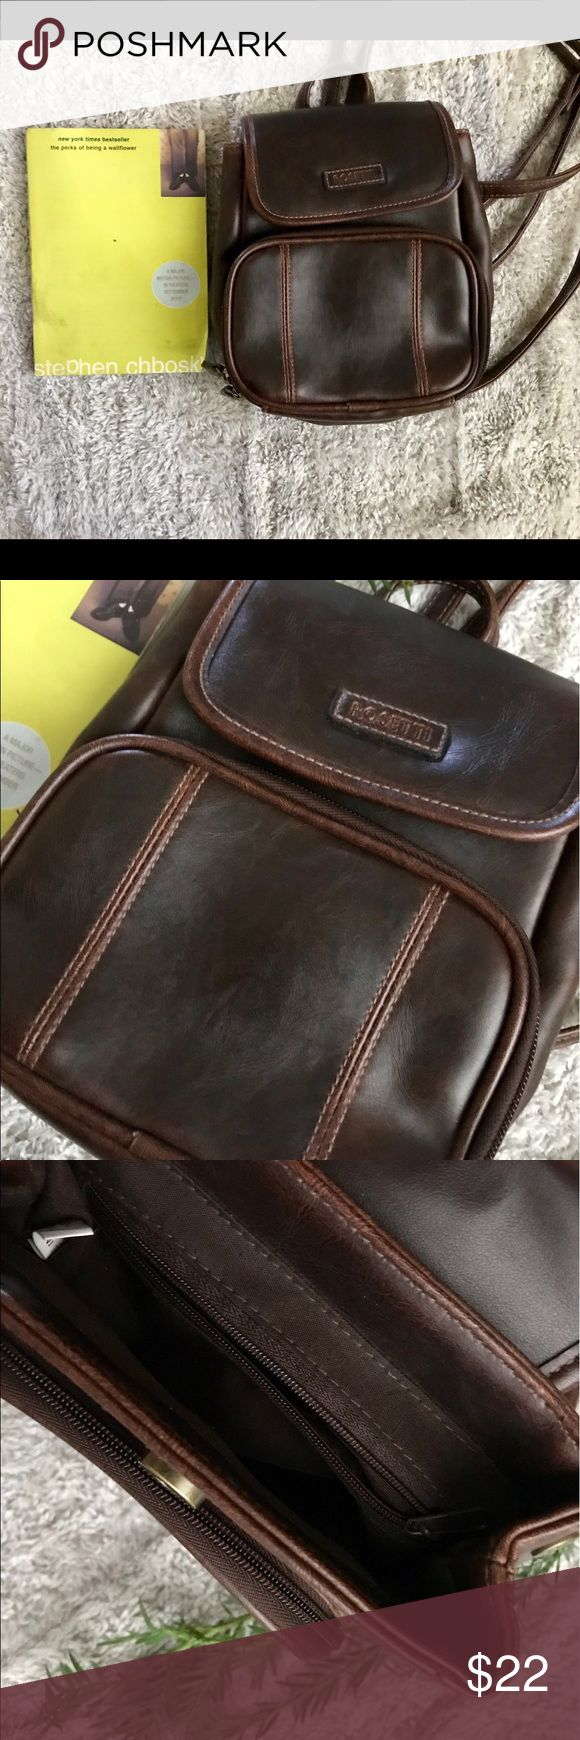 """Rosetti Mini Faux Leather Backpack Cutest little Backpack ever! Beautiful brown color.  Has two compartments in the front and one on the back. Mini Backpack measures approx. 8 1/2"""" long and 7 1/2"""" wide. Perfect little Backpack for a trip around town fits only the essentials 😉🌻♥️ Rosetti Bags Backpacks"""